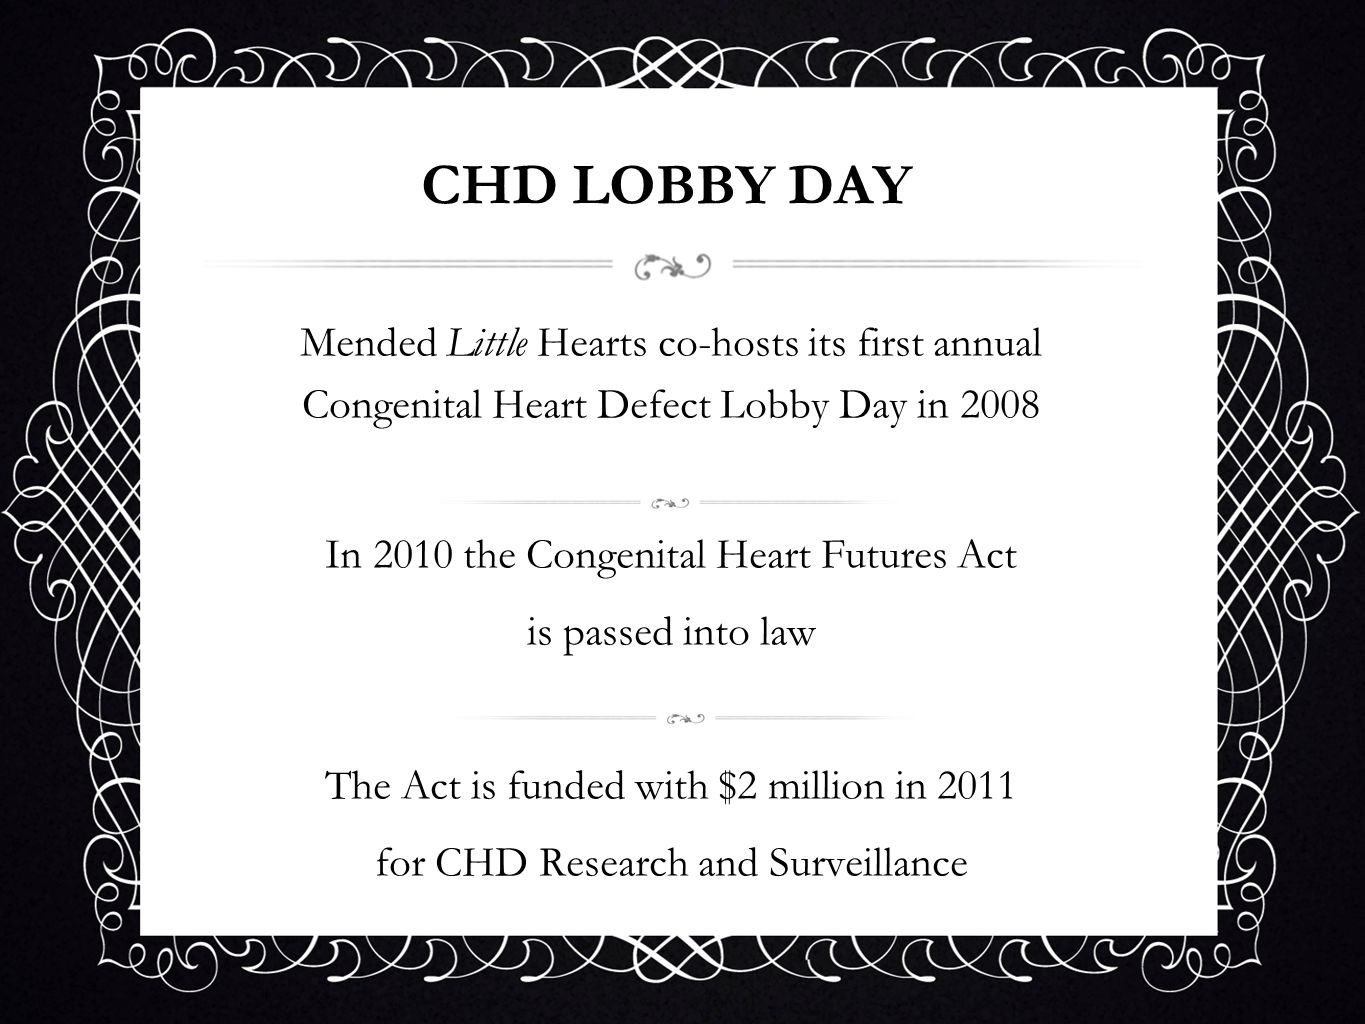 In 2010 the Congenital Heart Futures Act is passed into law